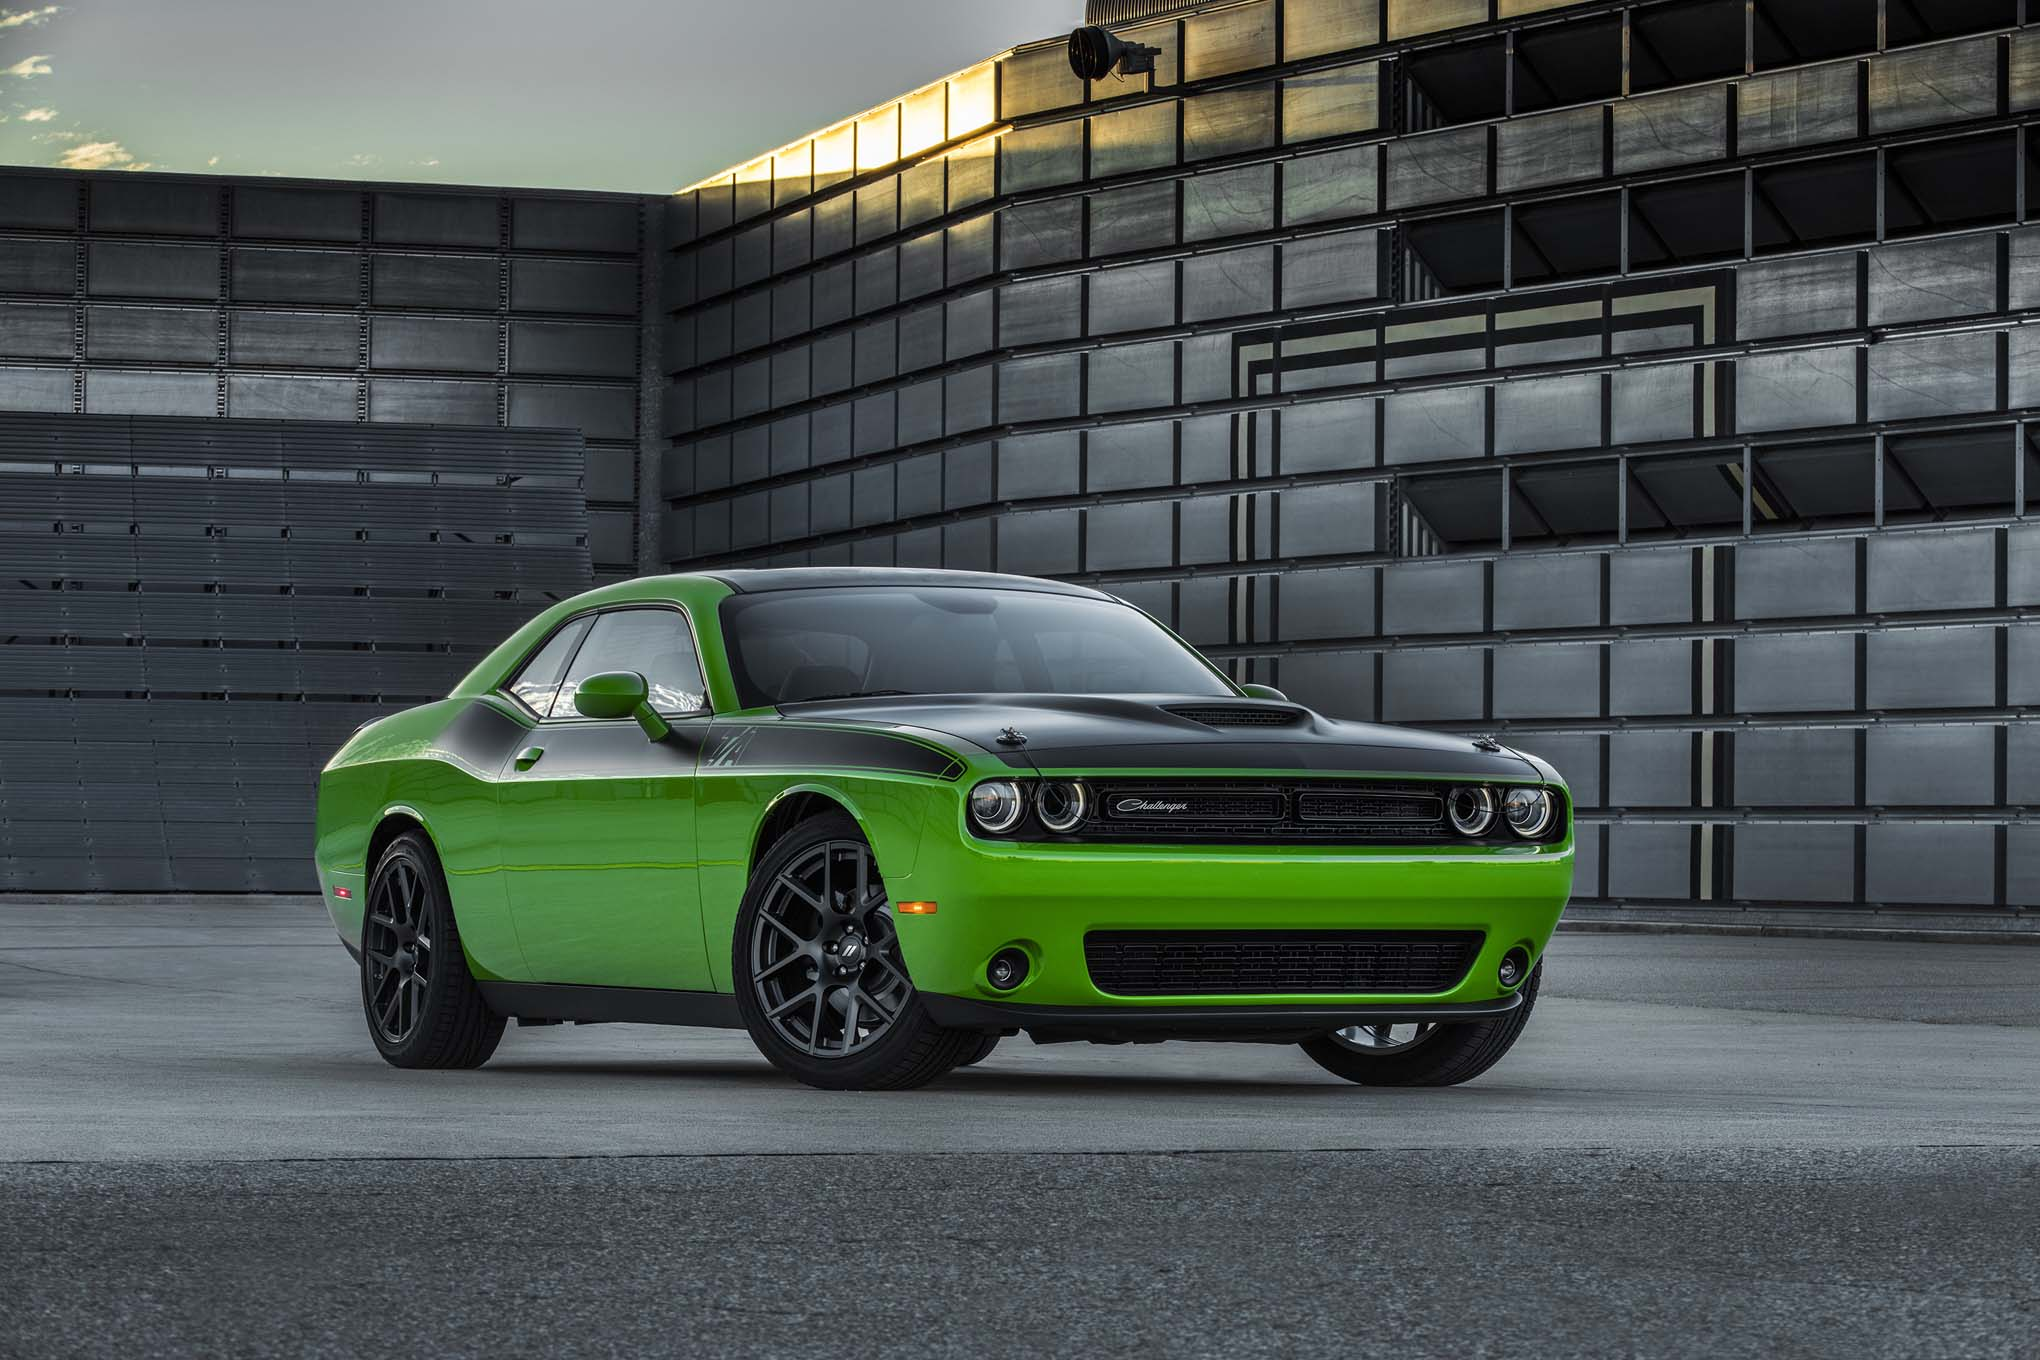 New 2017 Dodge Challenger T/A – Video Specs Photos